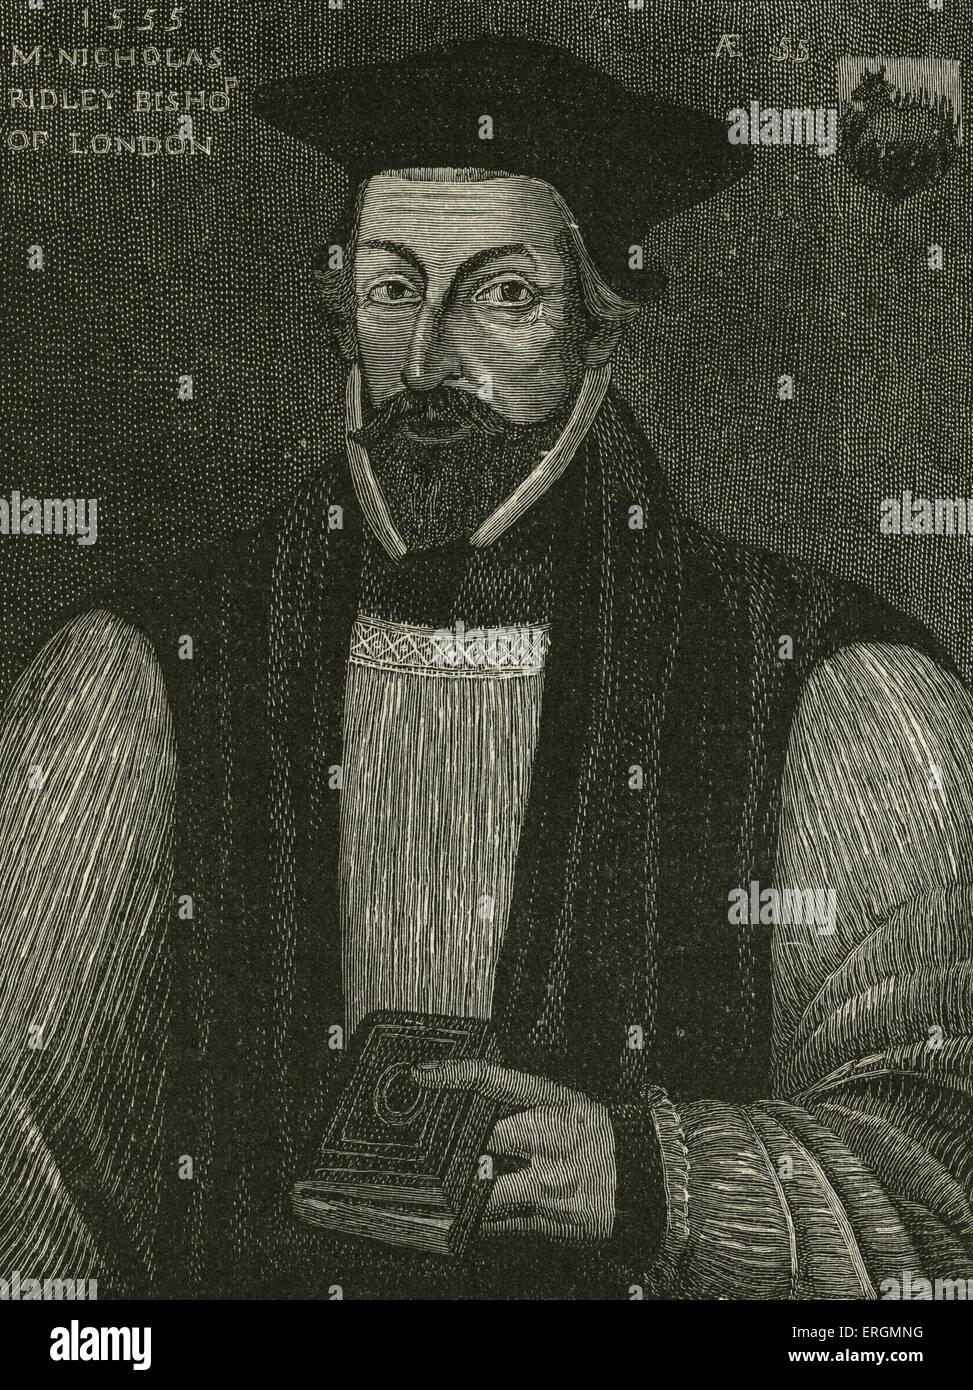 Nicolas Ridley (1500-1555) was an English Bishop burned during the Marian Persecutions for his preaching of protestantism - Stock Image